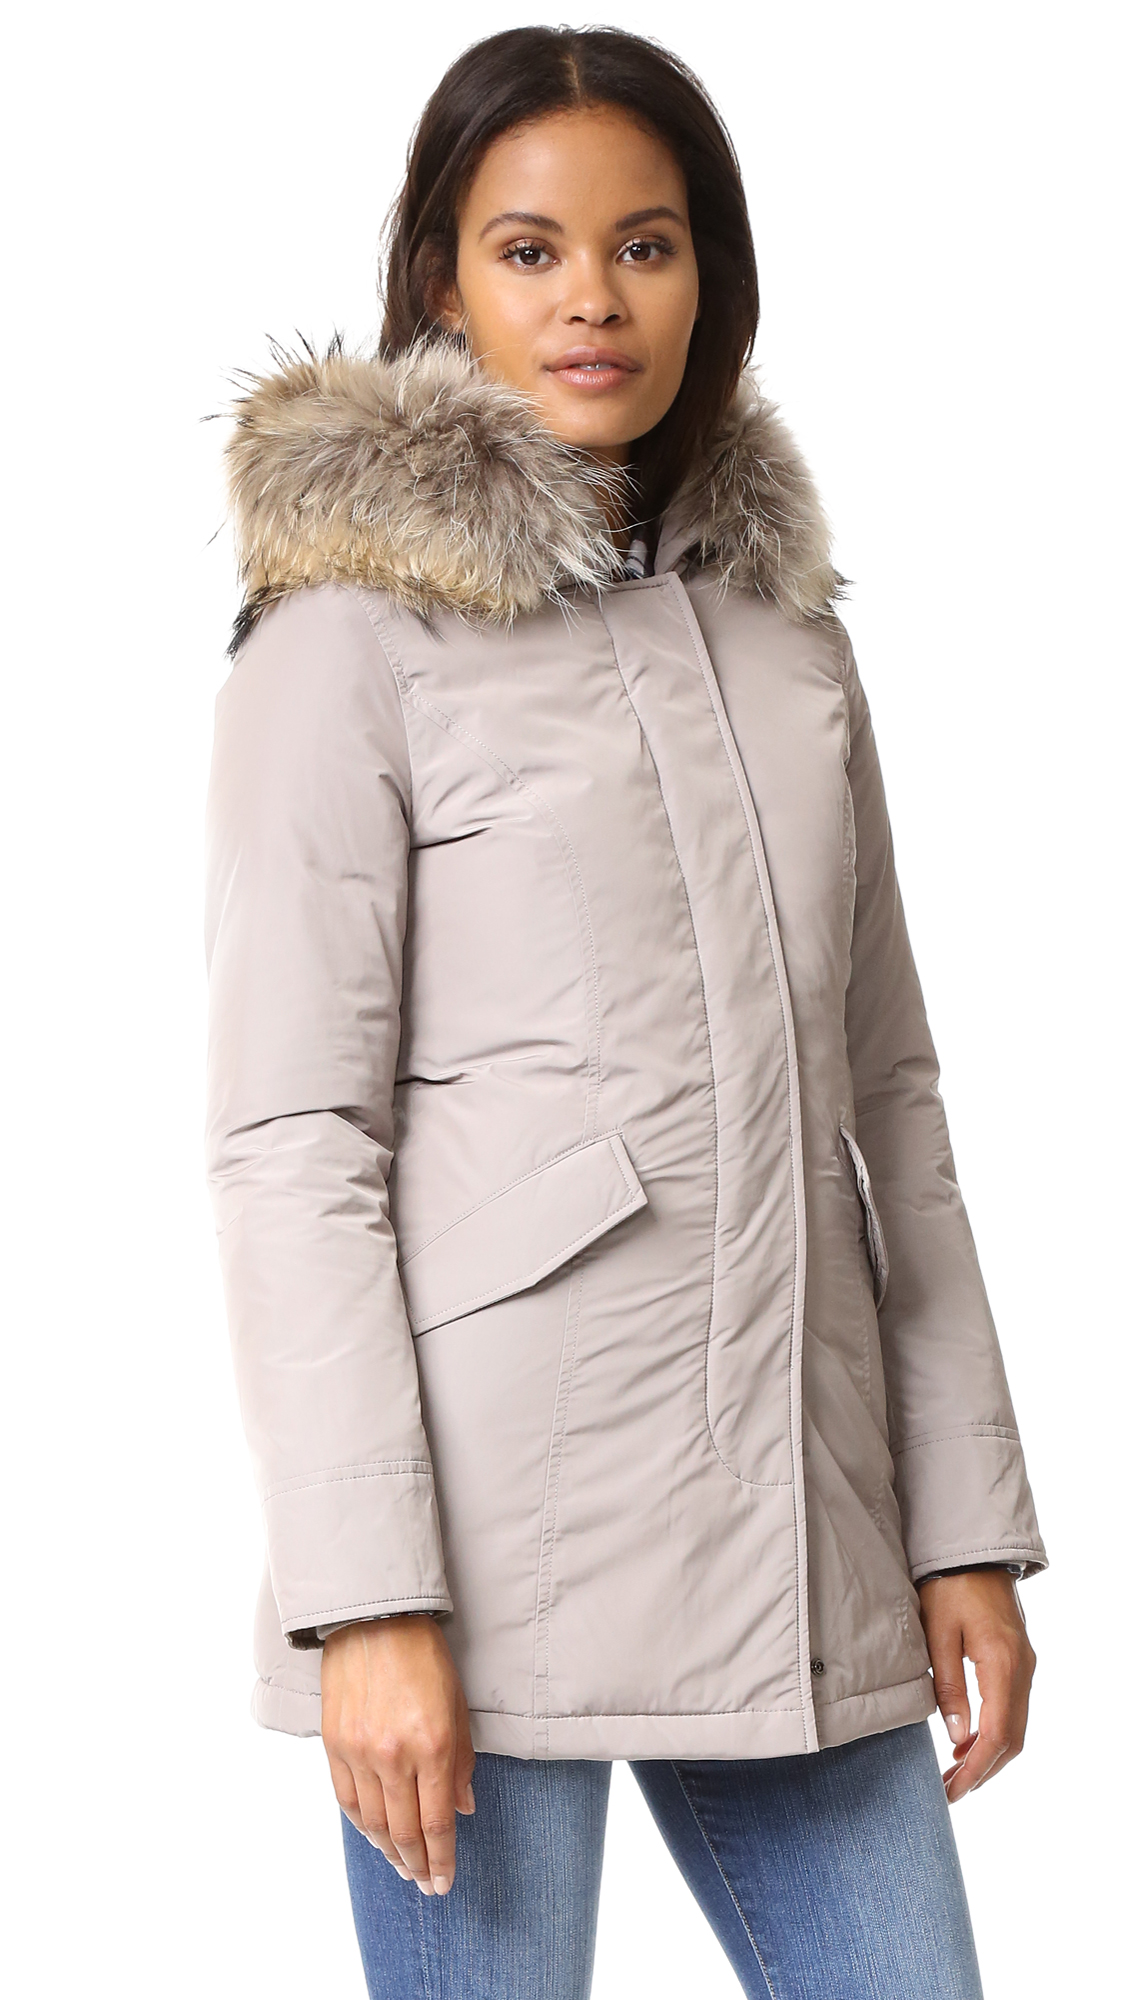 Woolrich Luxury Arctic Parka Review photographyweddings.co.uk